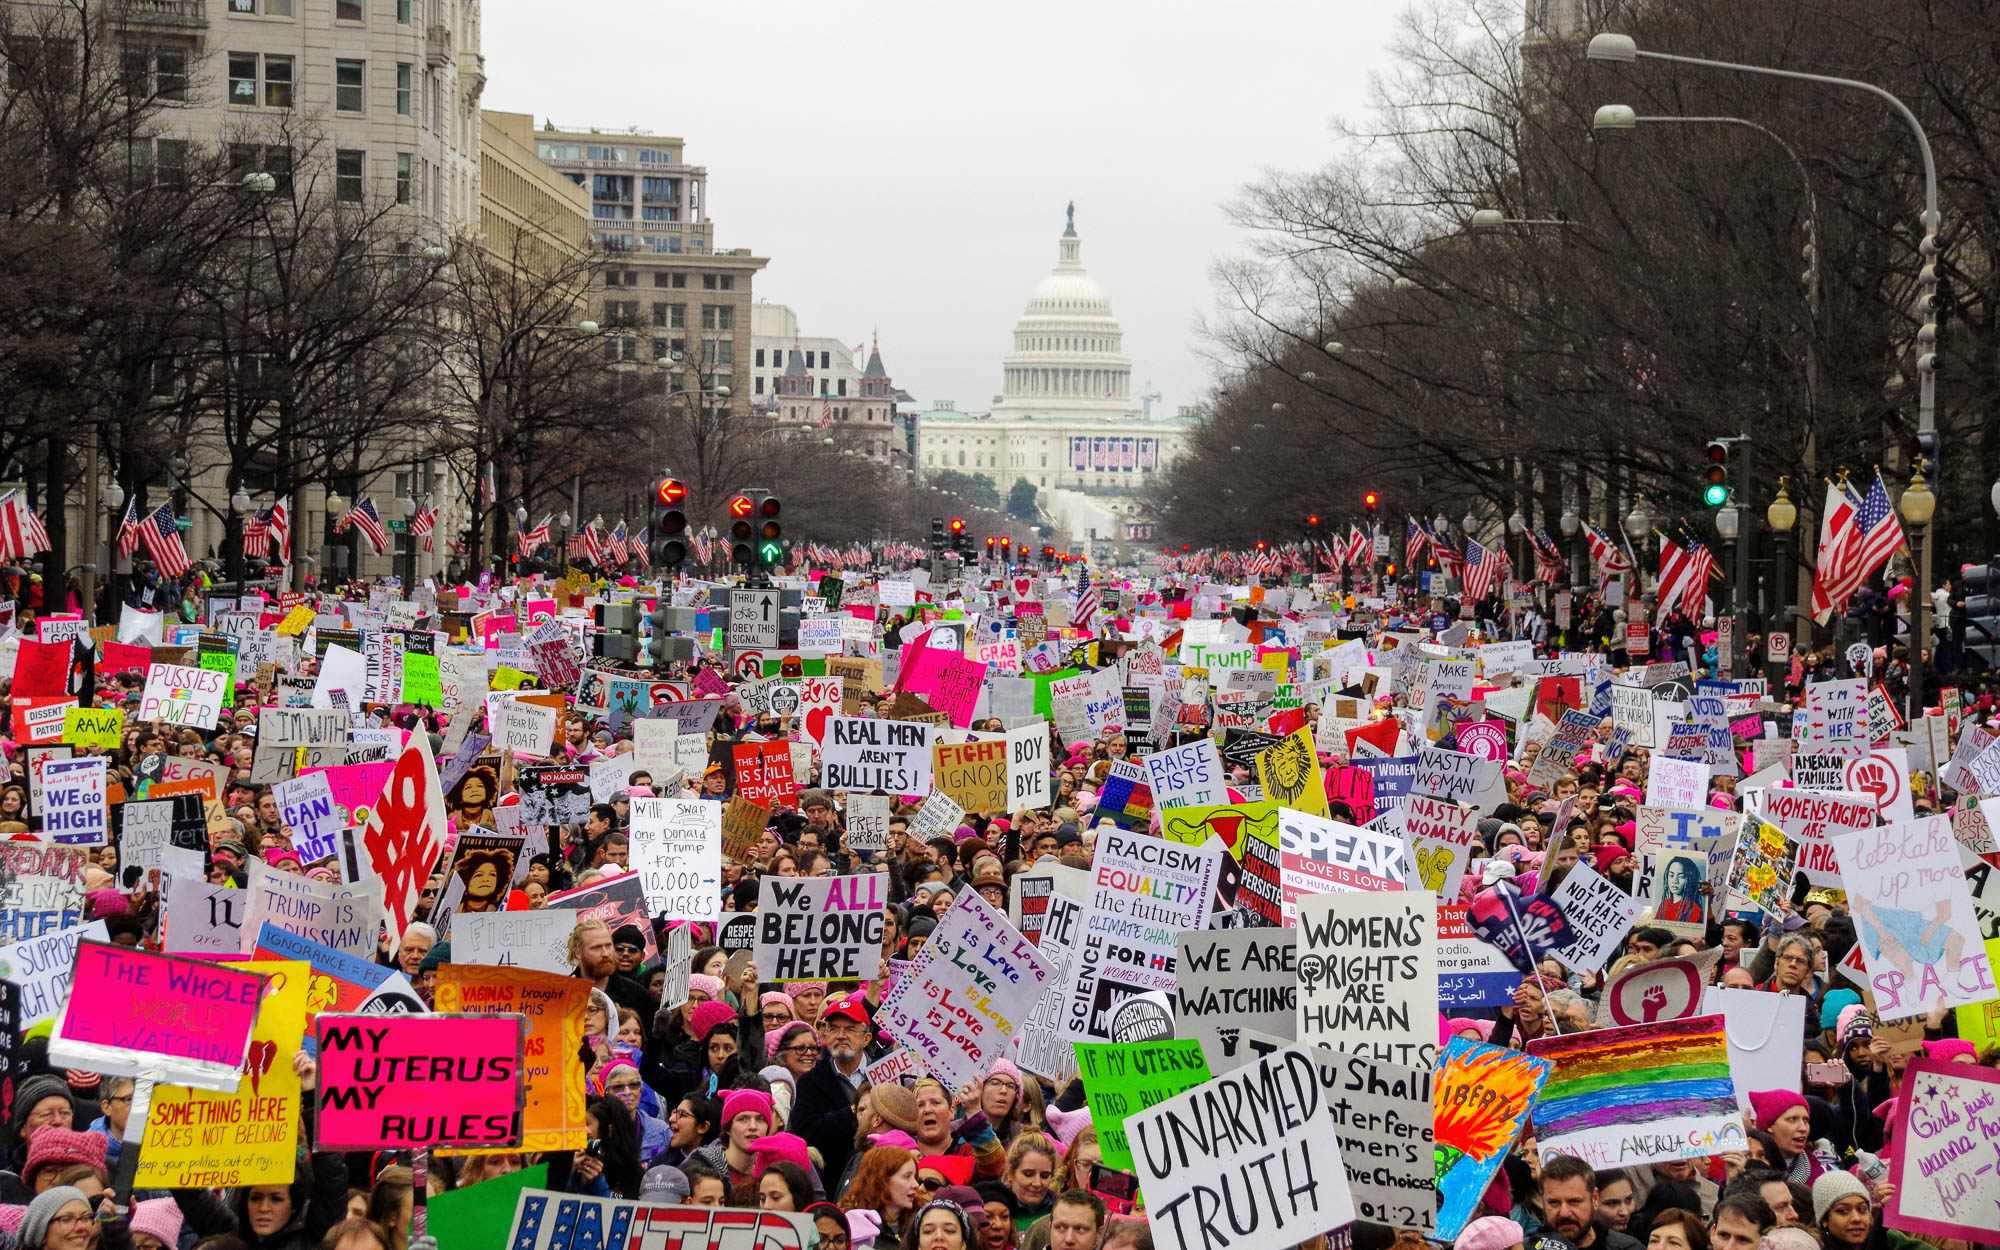 The 2017 women's march takes place in downtown Washington D.C. with the Trump Hotel and the Capitol Building in the background. Editorial credit: G. Midford / Shutterstock.com.